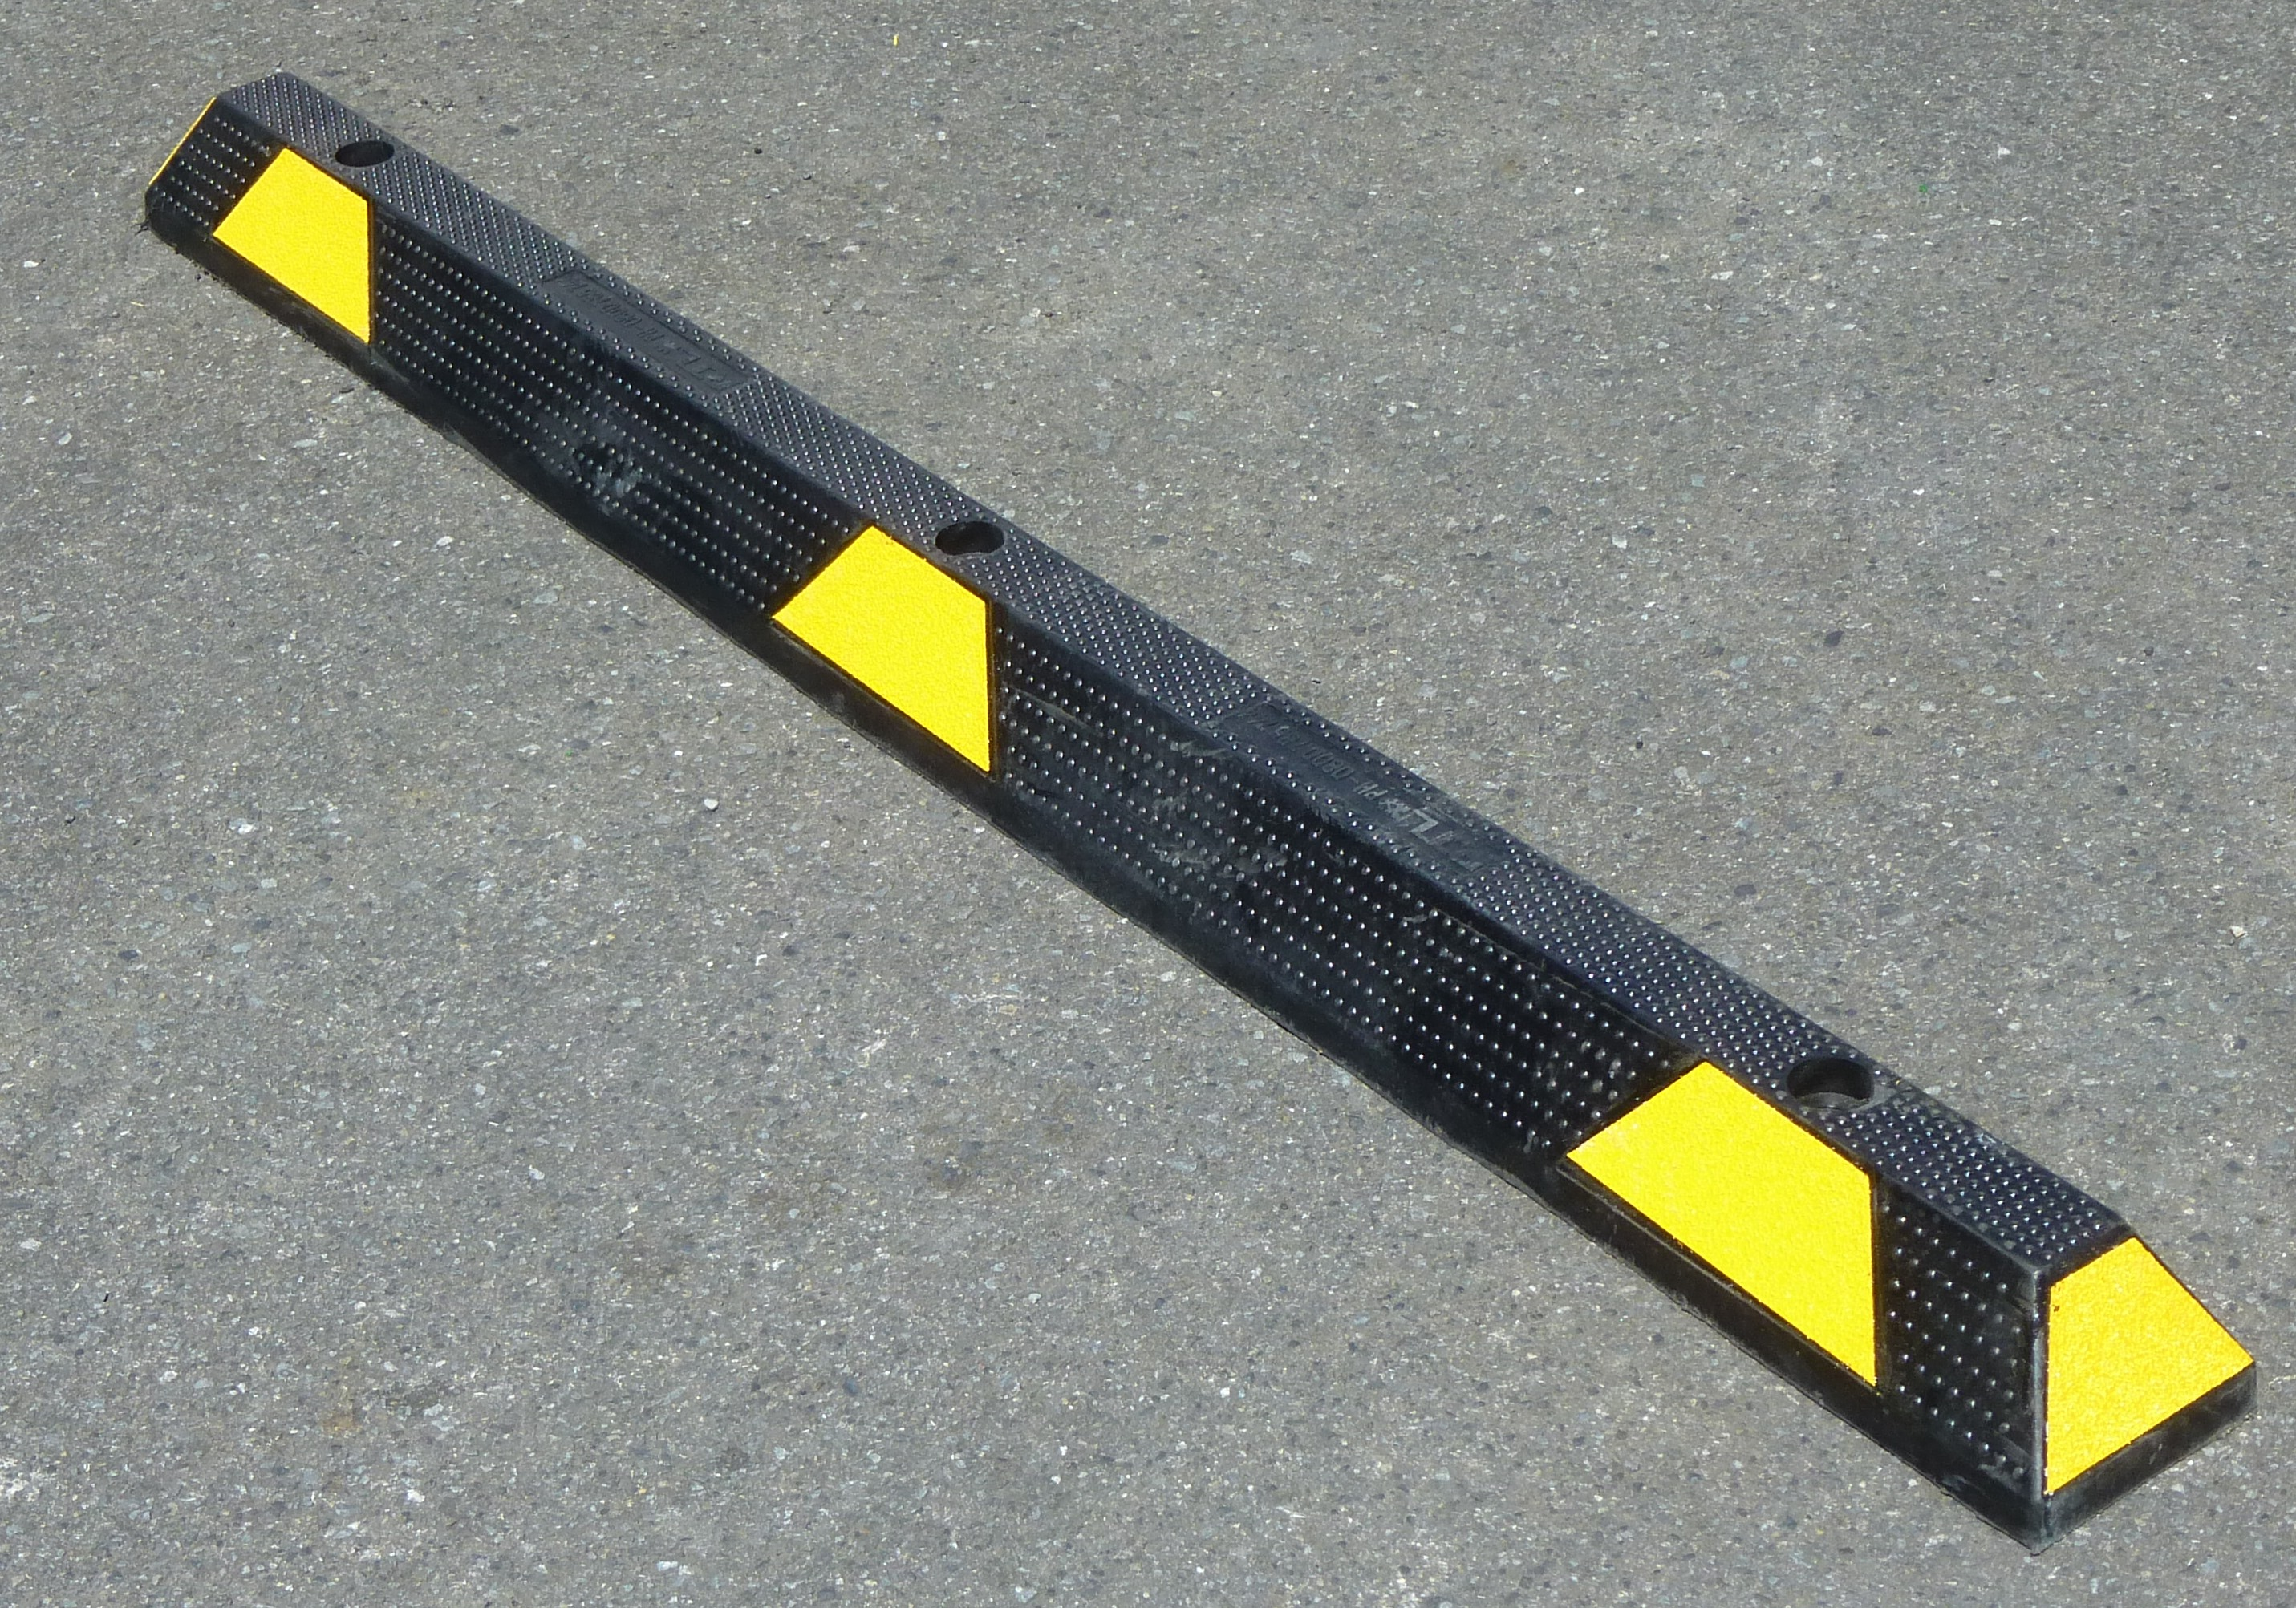 Car Park Stoppers Nz